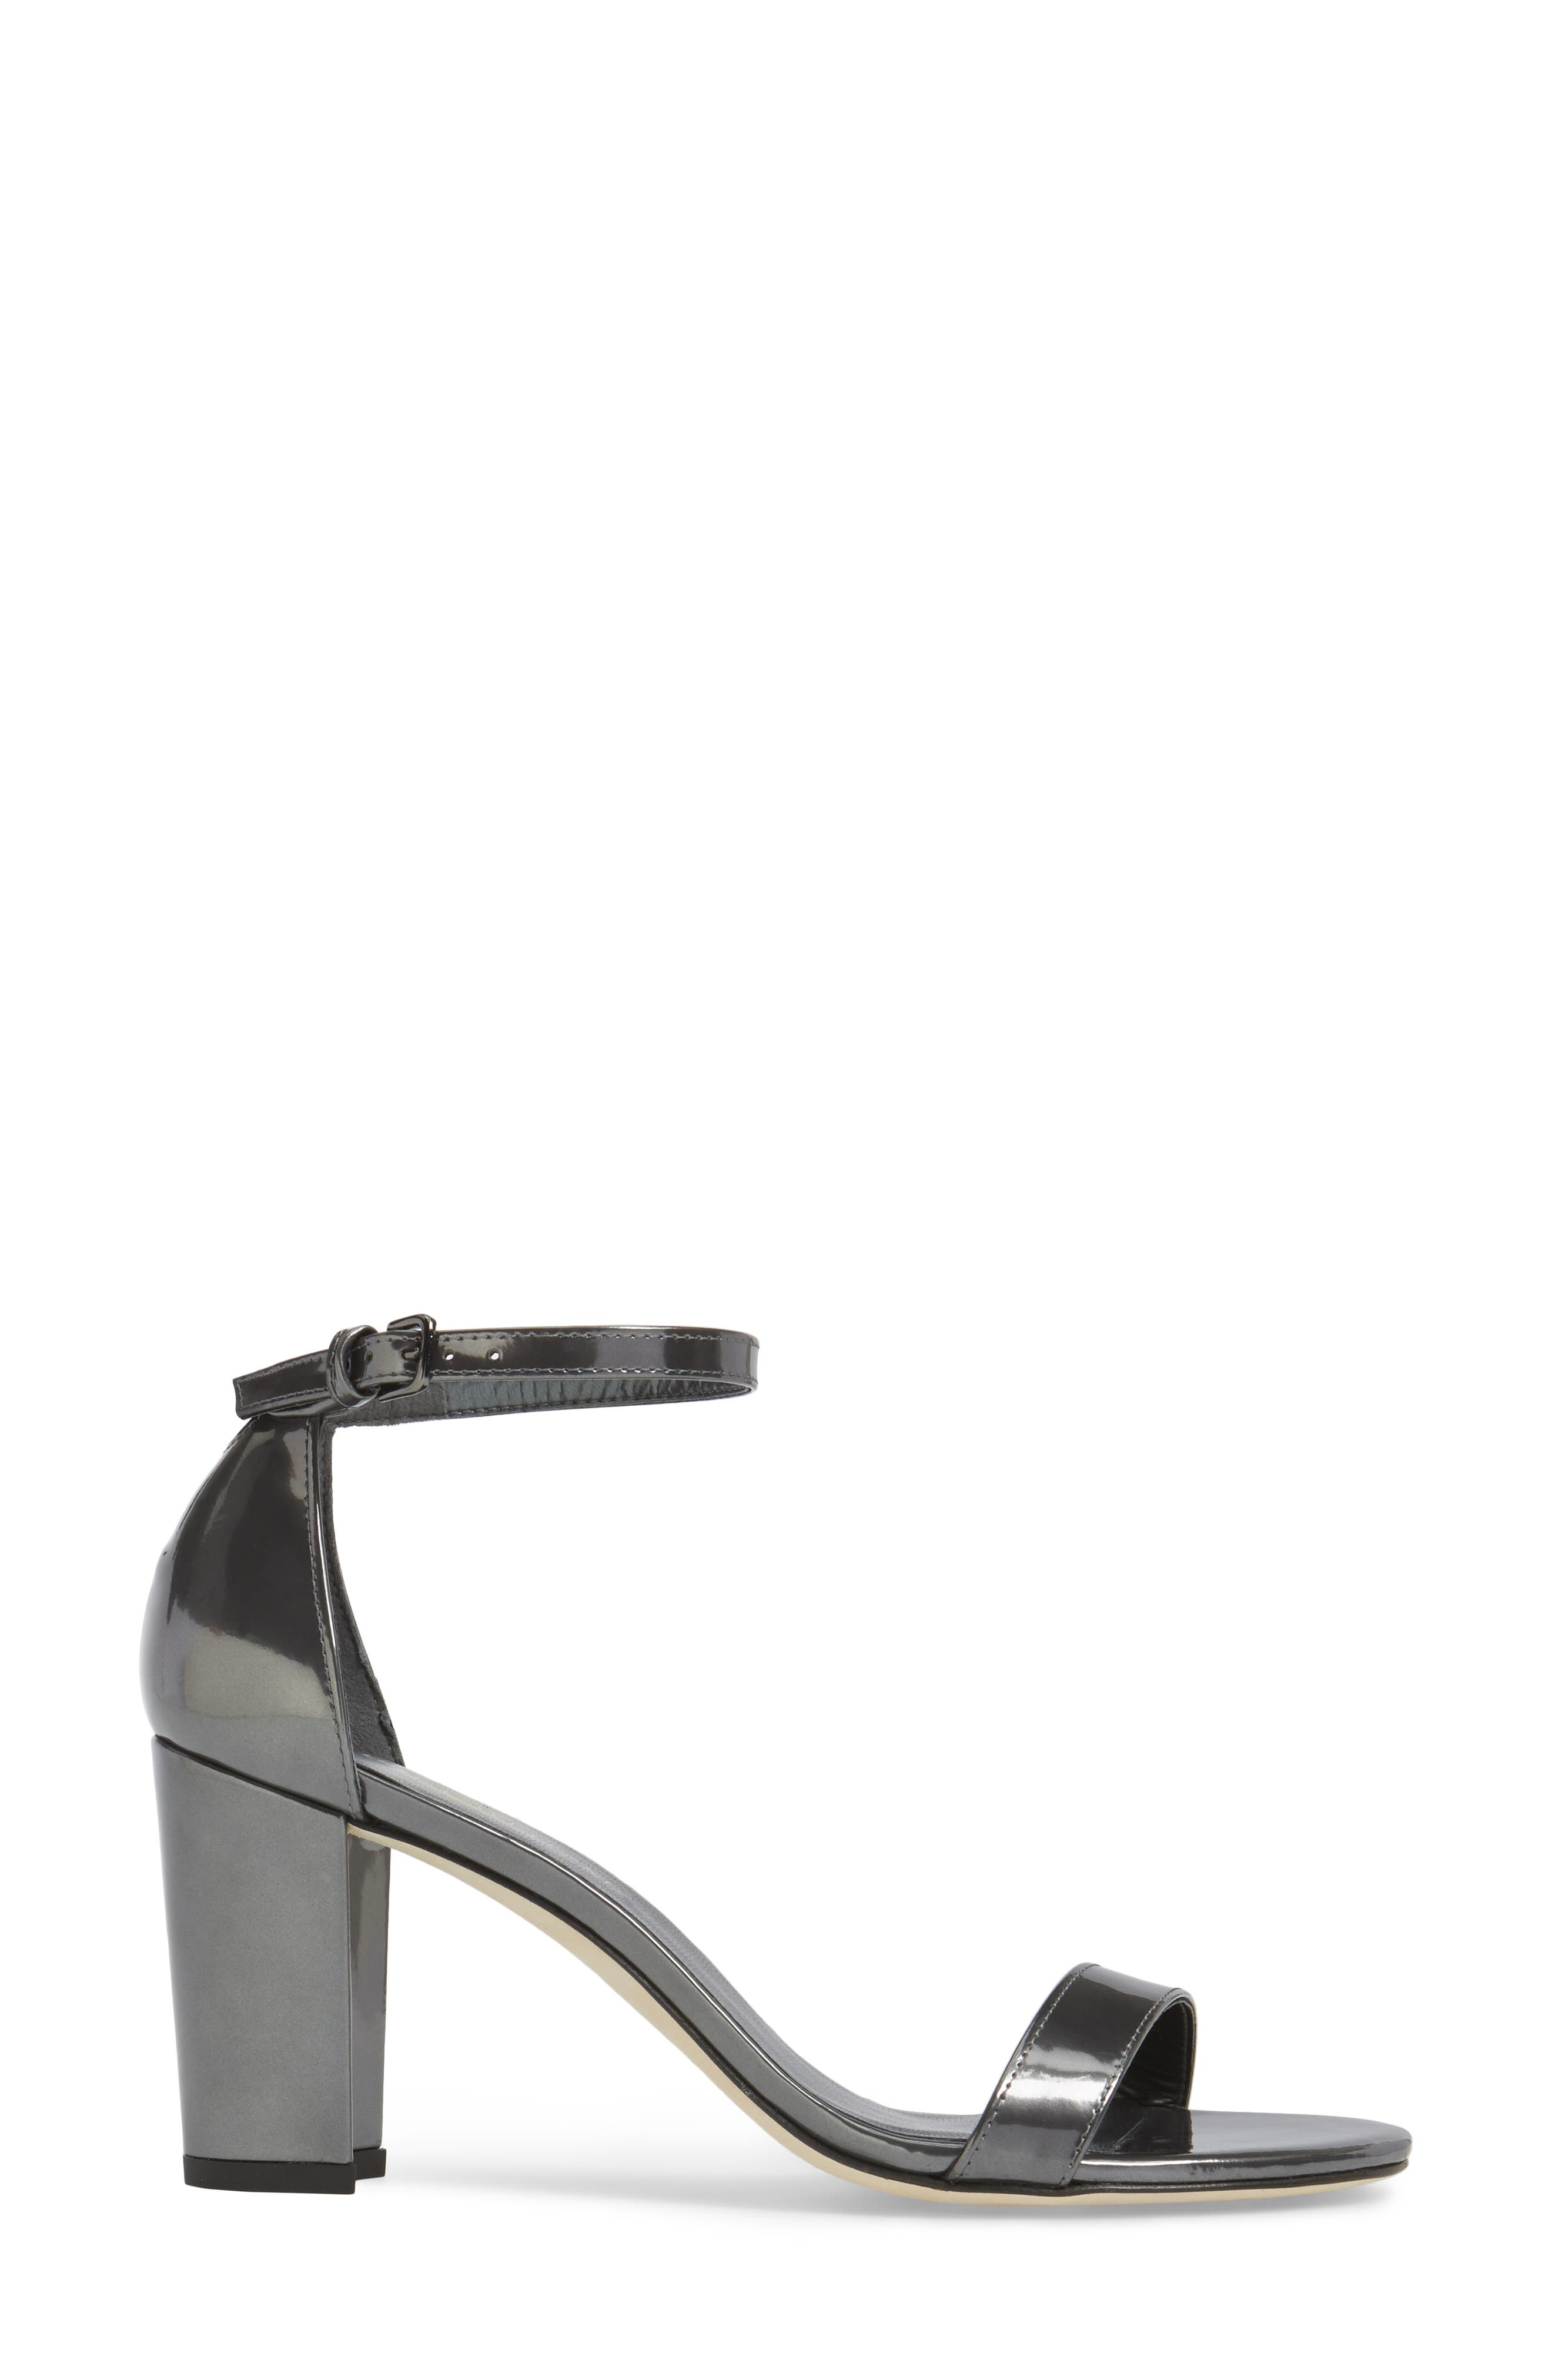 NearlyNude Ankle Strap Sandal,                             Alternate thumbnail 66, color,